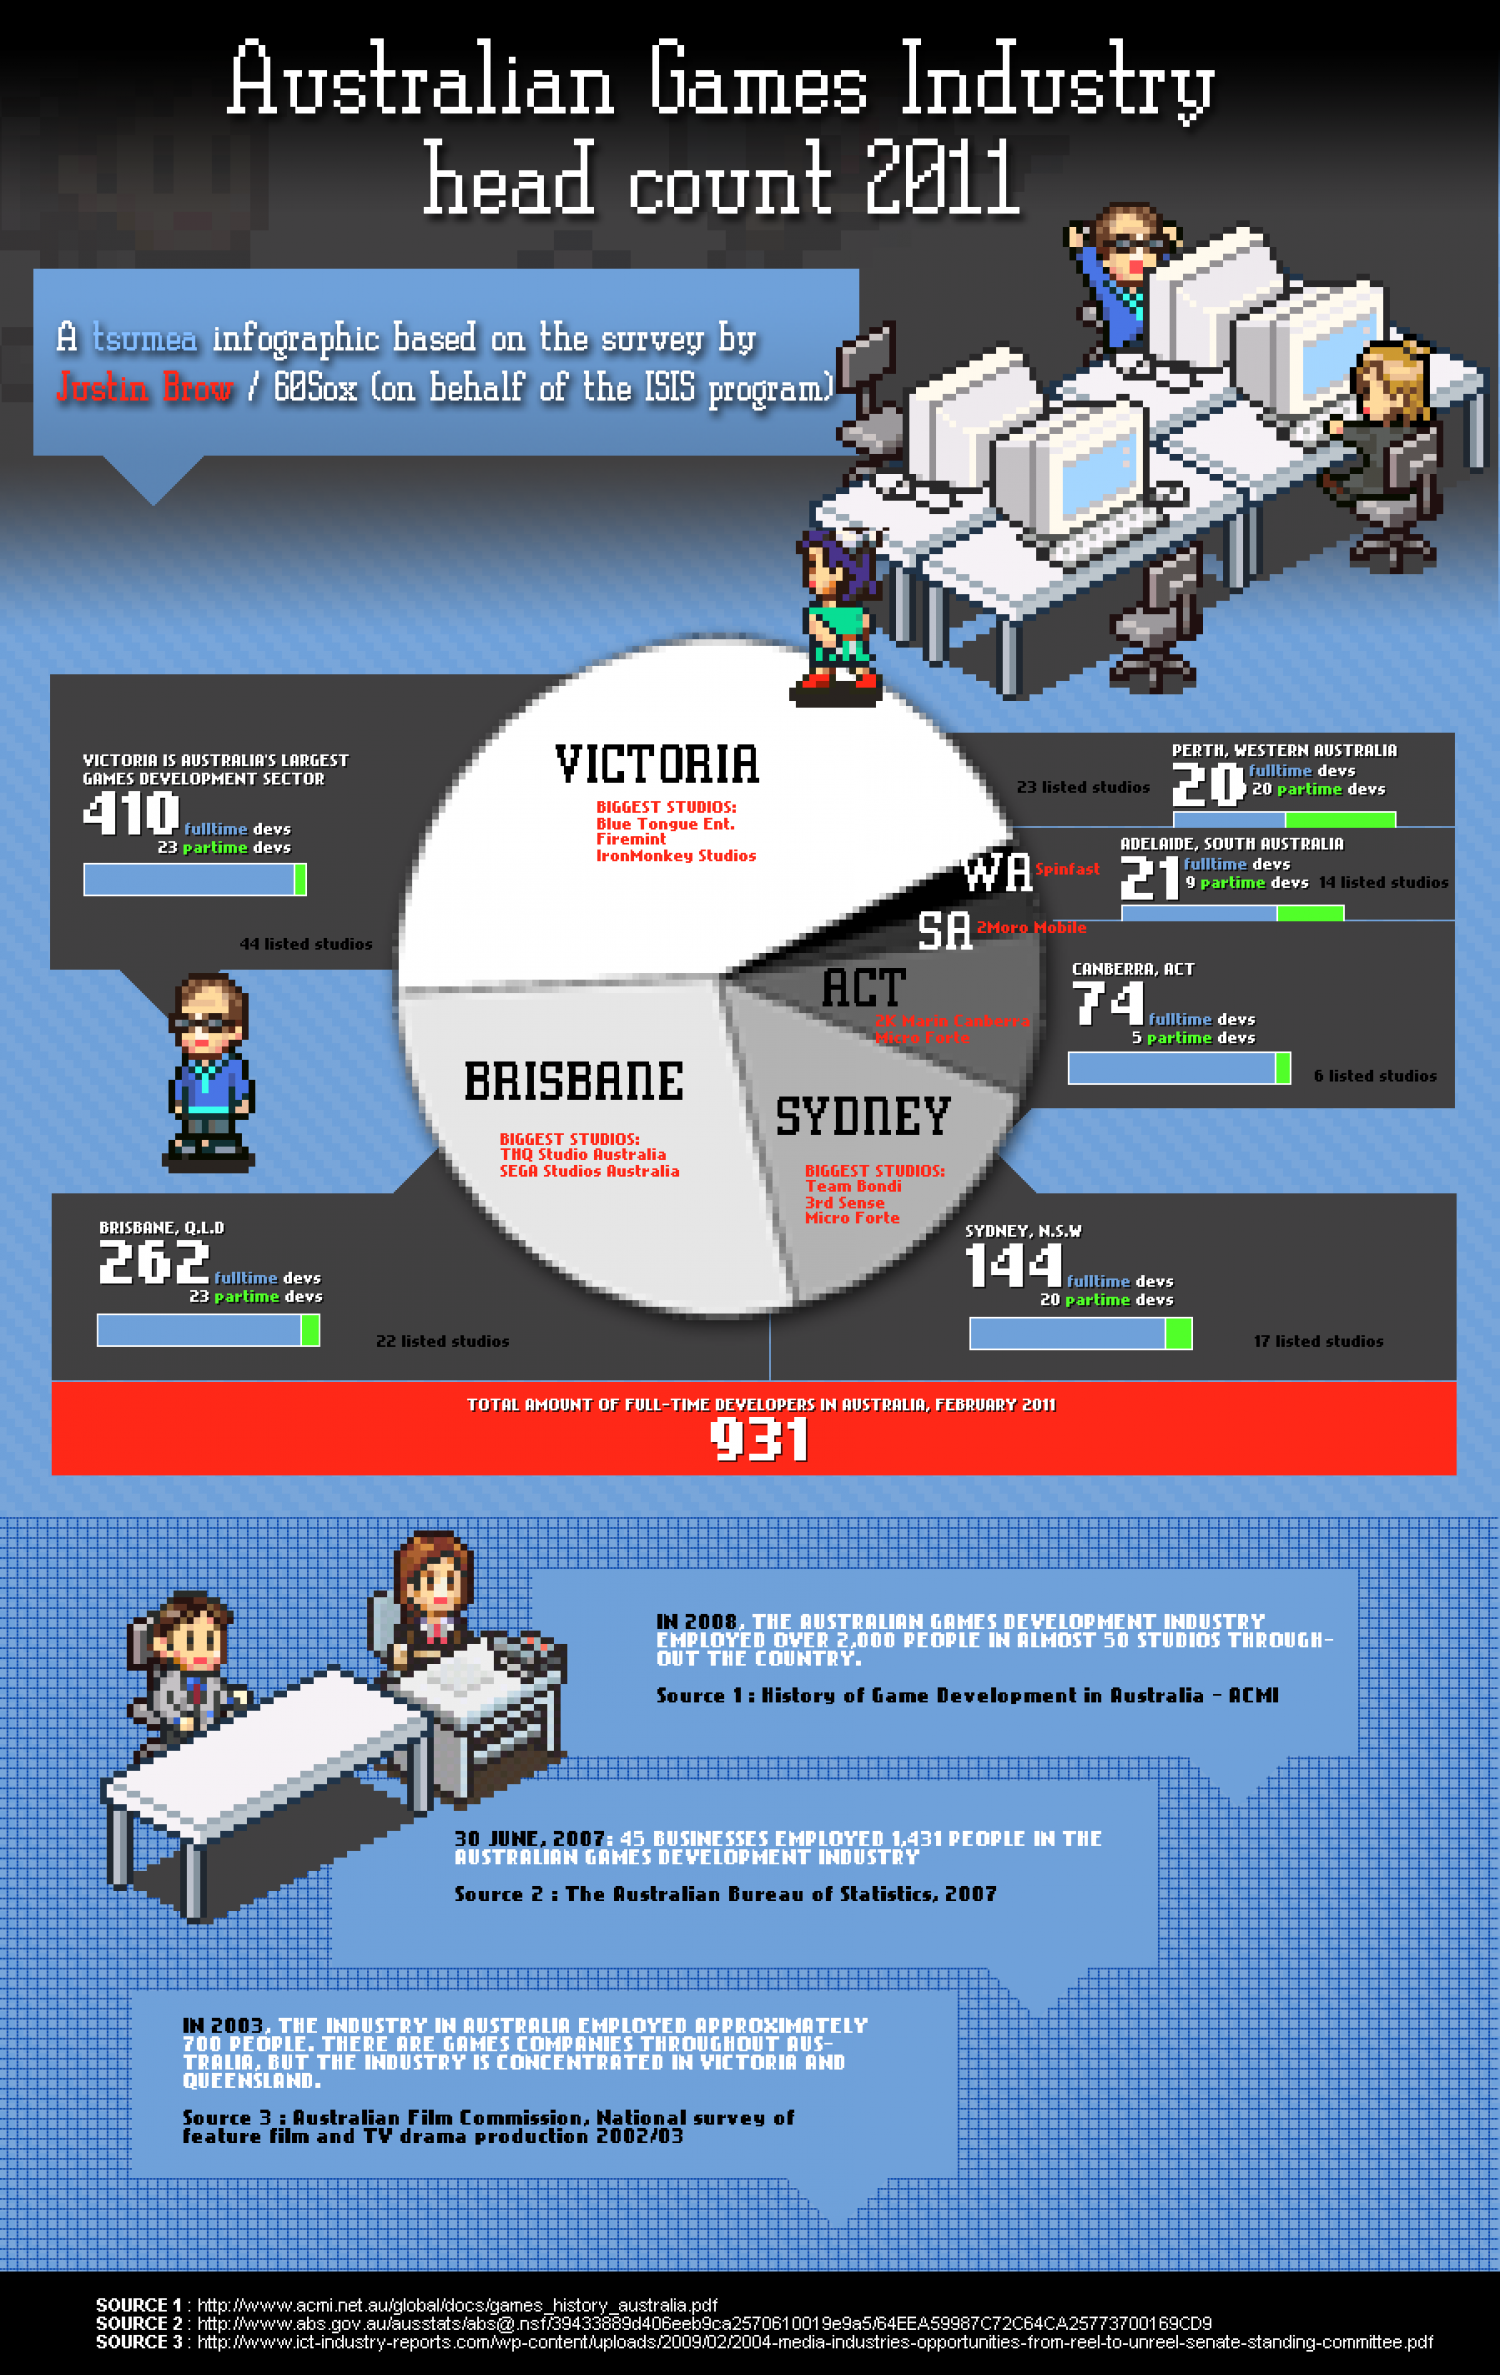 Australian Games Industry 2011 head count Infographic